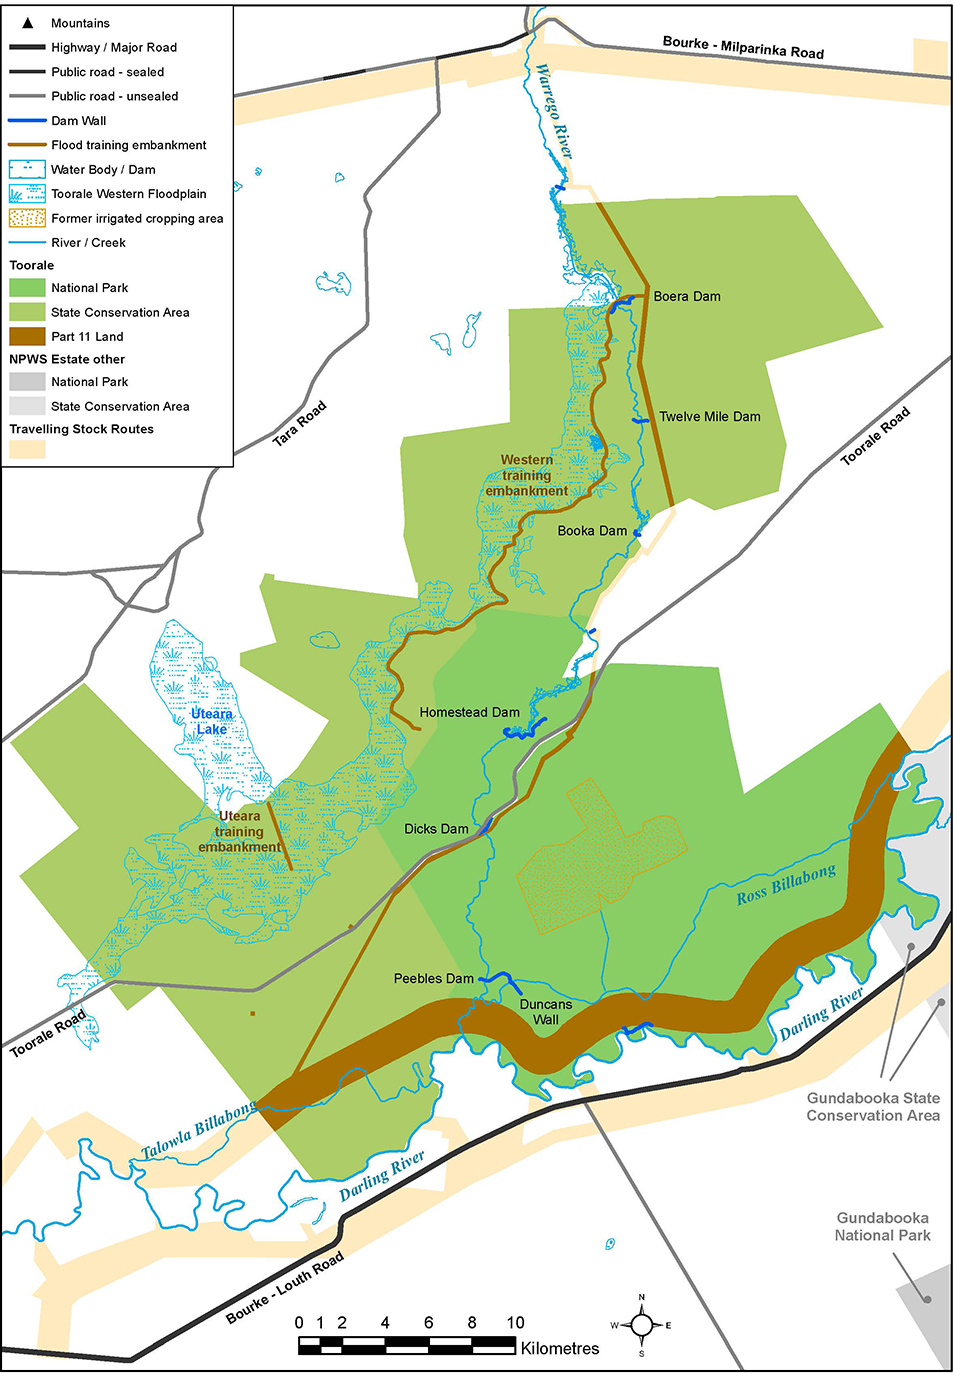 Toorale National Park map showing water infrastructure project details